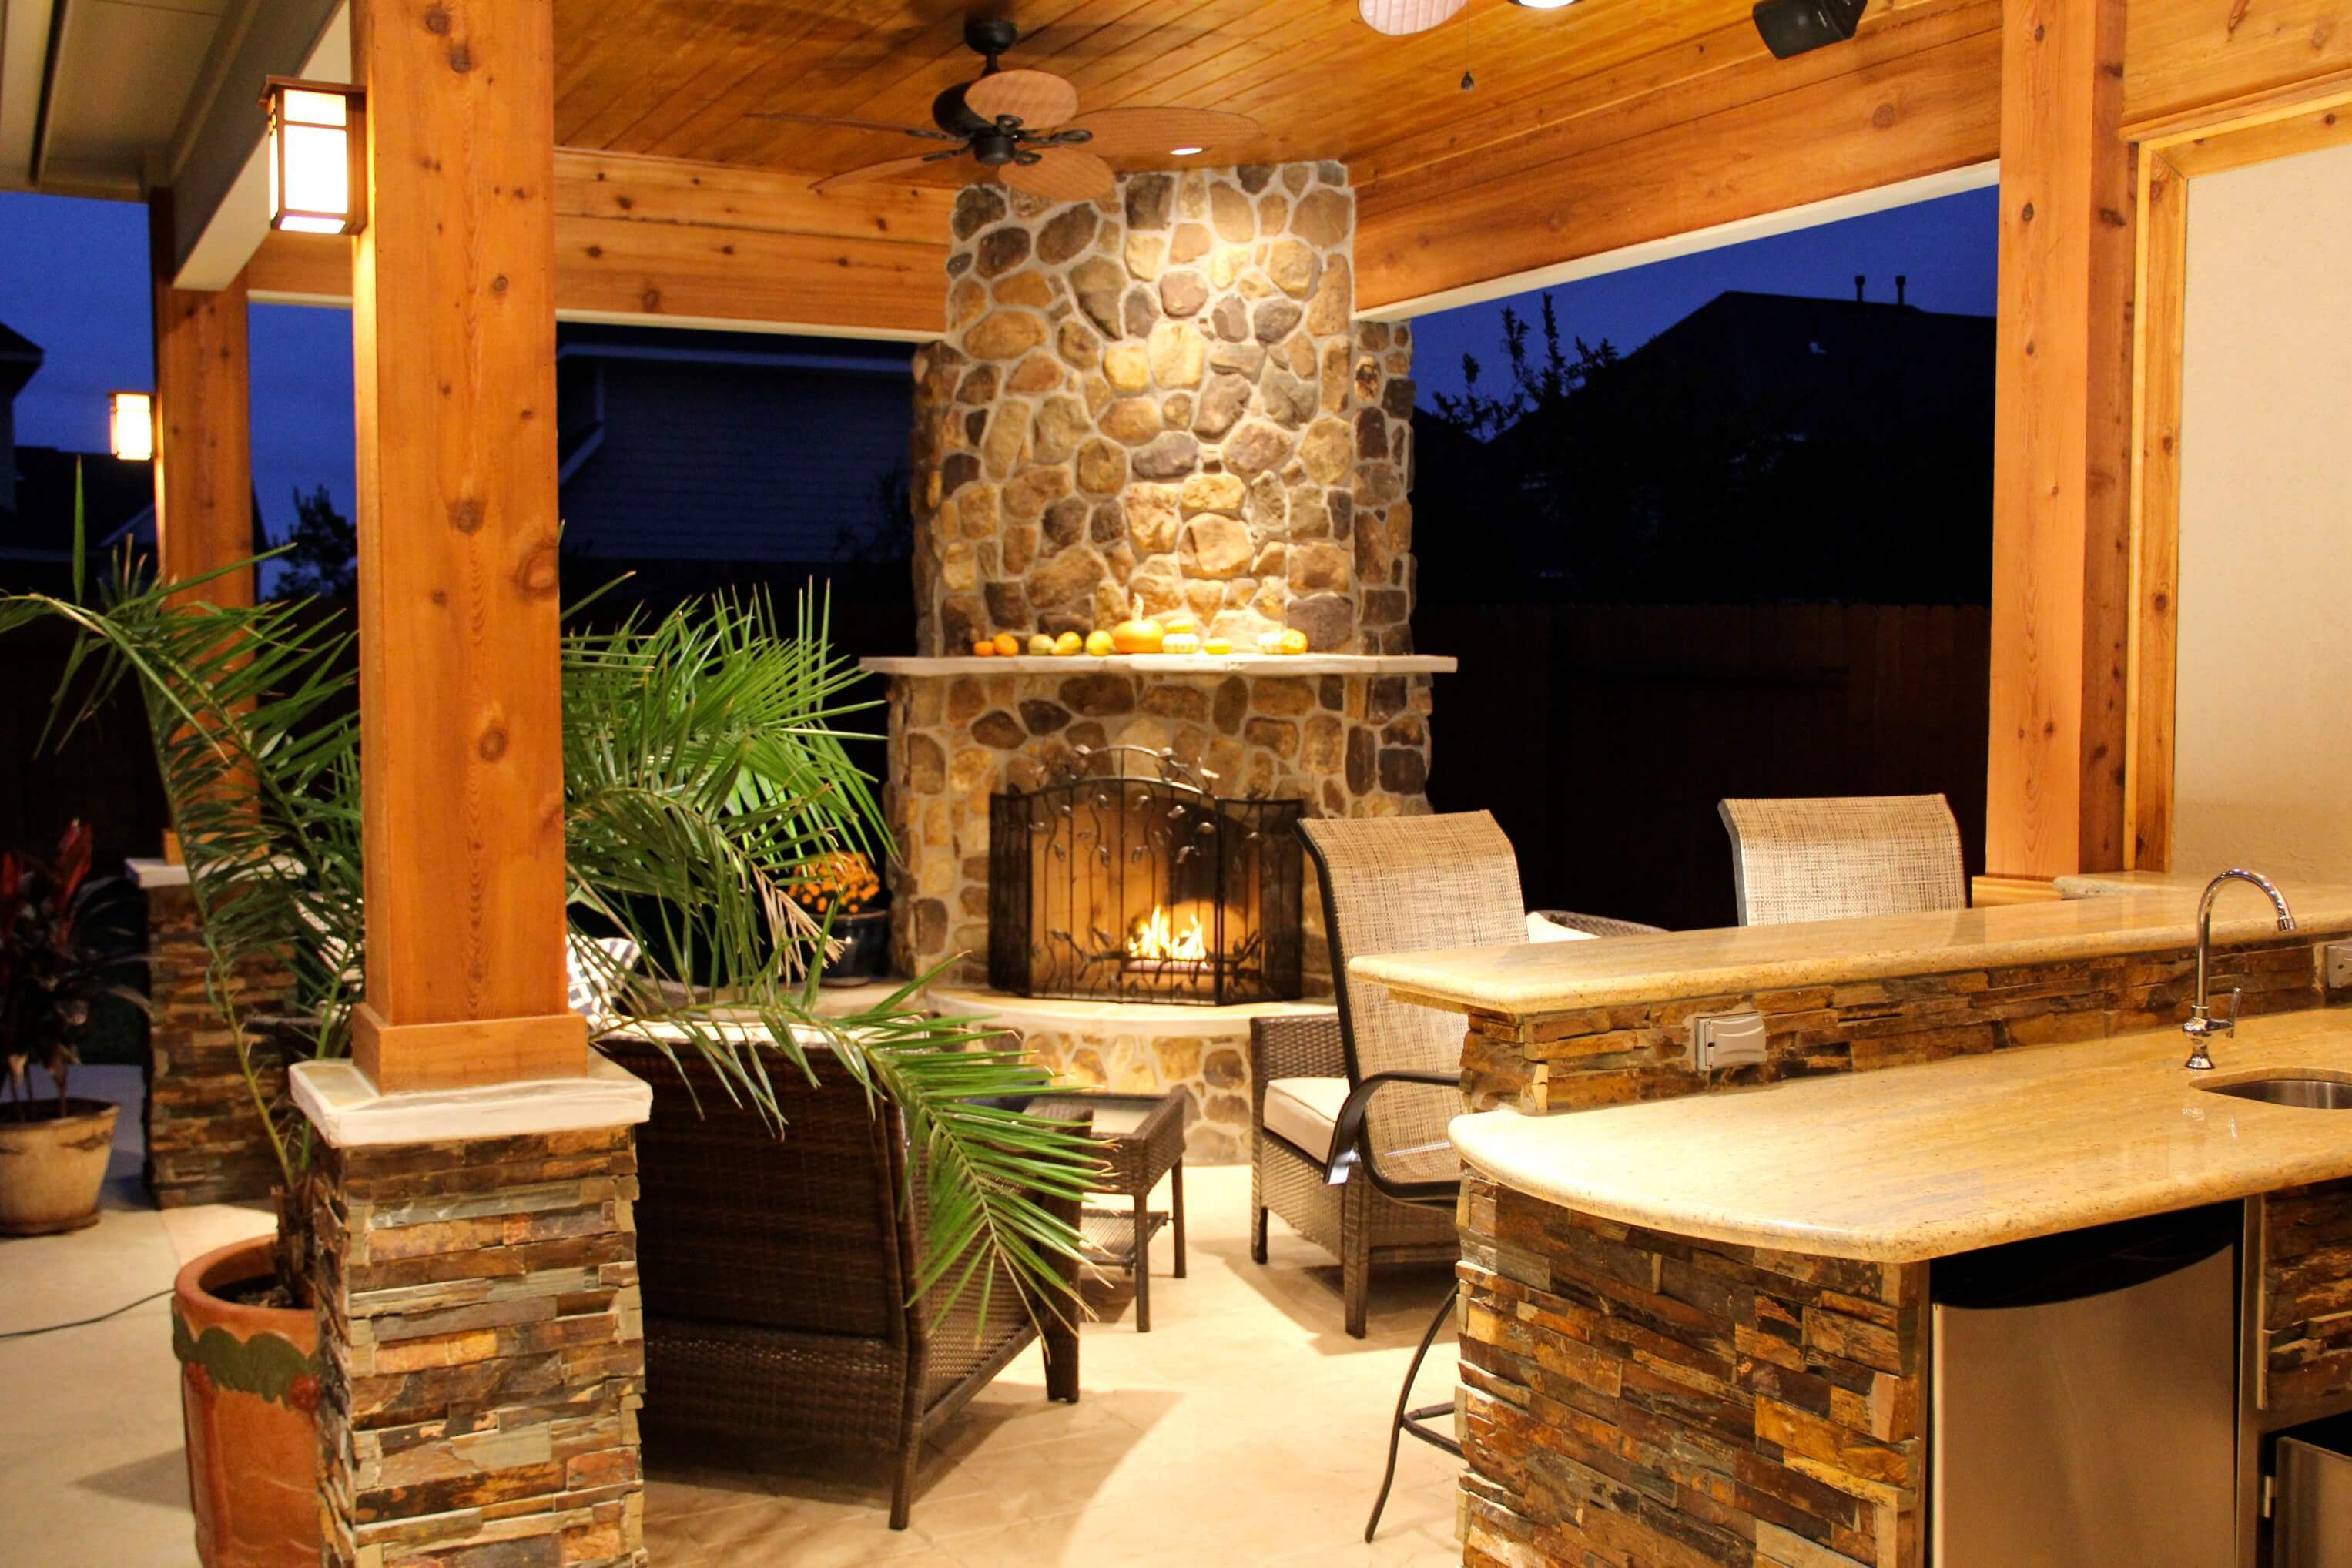 Patio Cover With Fireplace & Kitchen In Firethorne - Texas ... on Covered Outdoor Kitchen With Fireplace id=13772